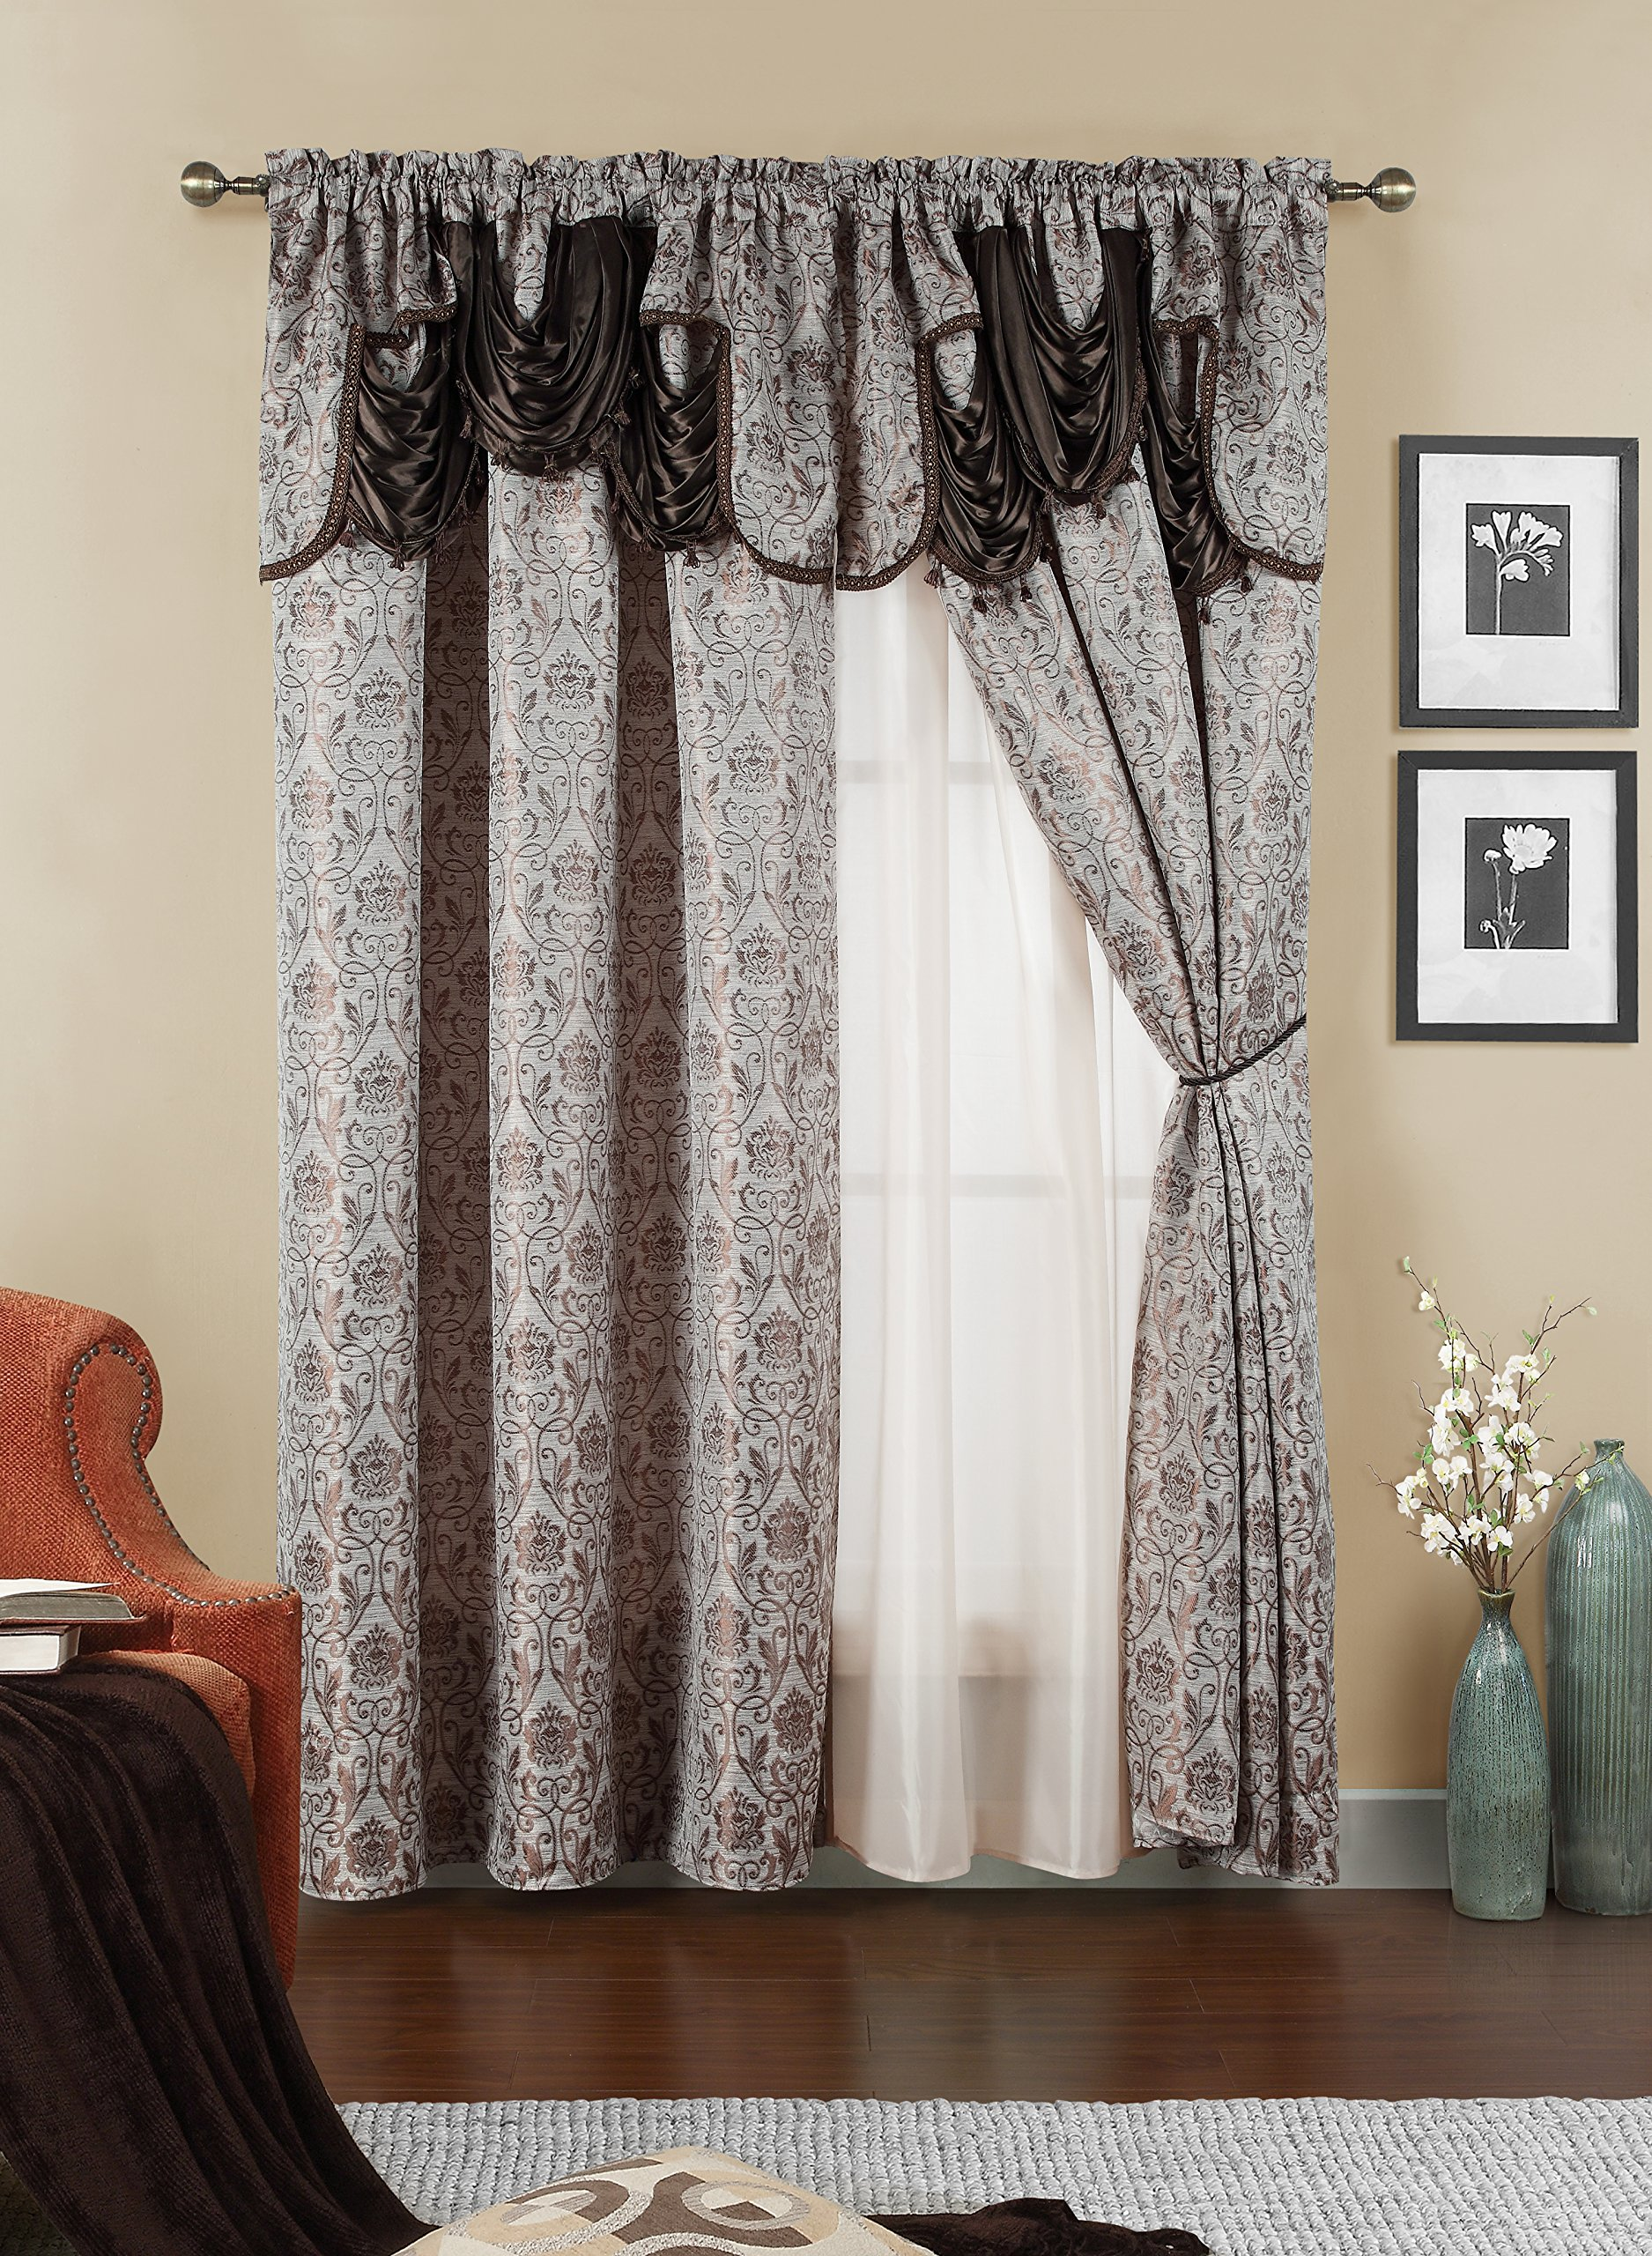 Elegant Home Beautiful Window Curtain Drapes All-in-One Set with Attached Valance & Sheer Backing for Living Room, Bedroom, Dining Room, and Sliding Doors (No Tie Back) - Ehjen (Brown)